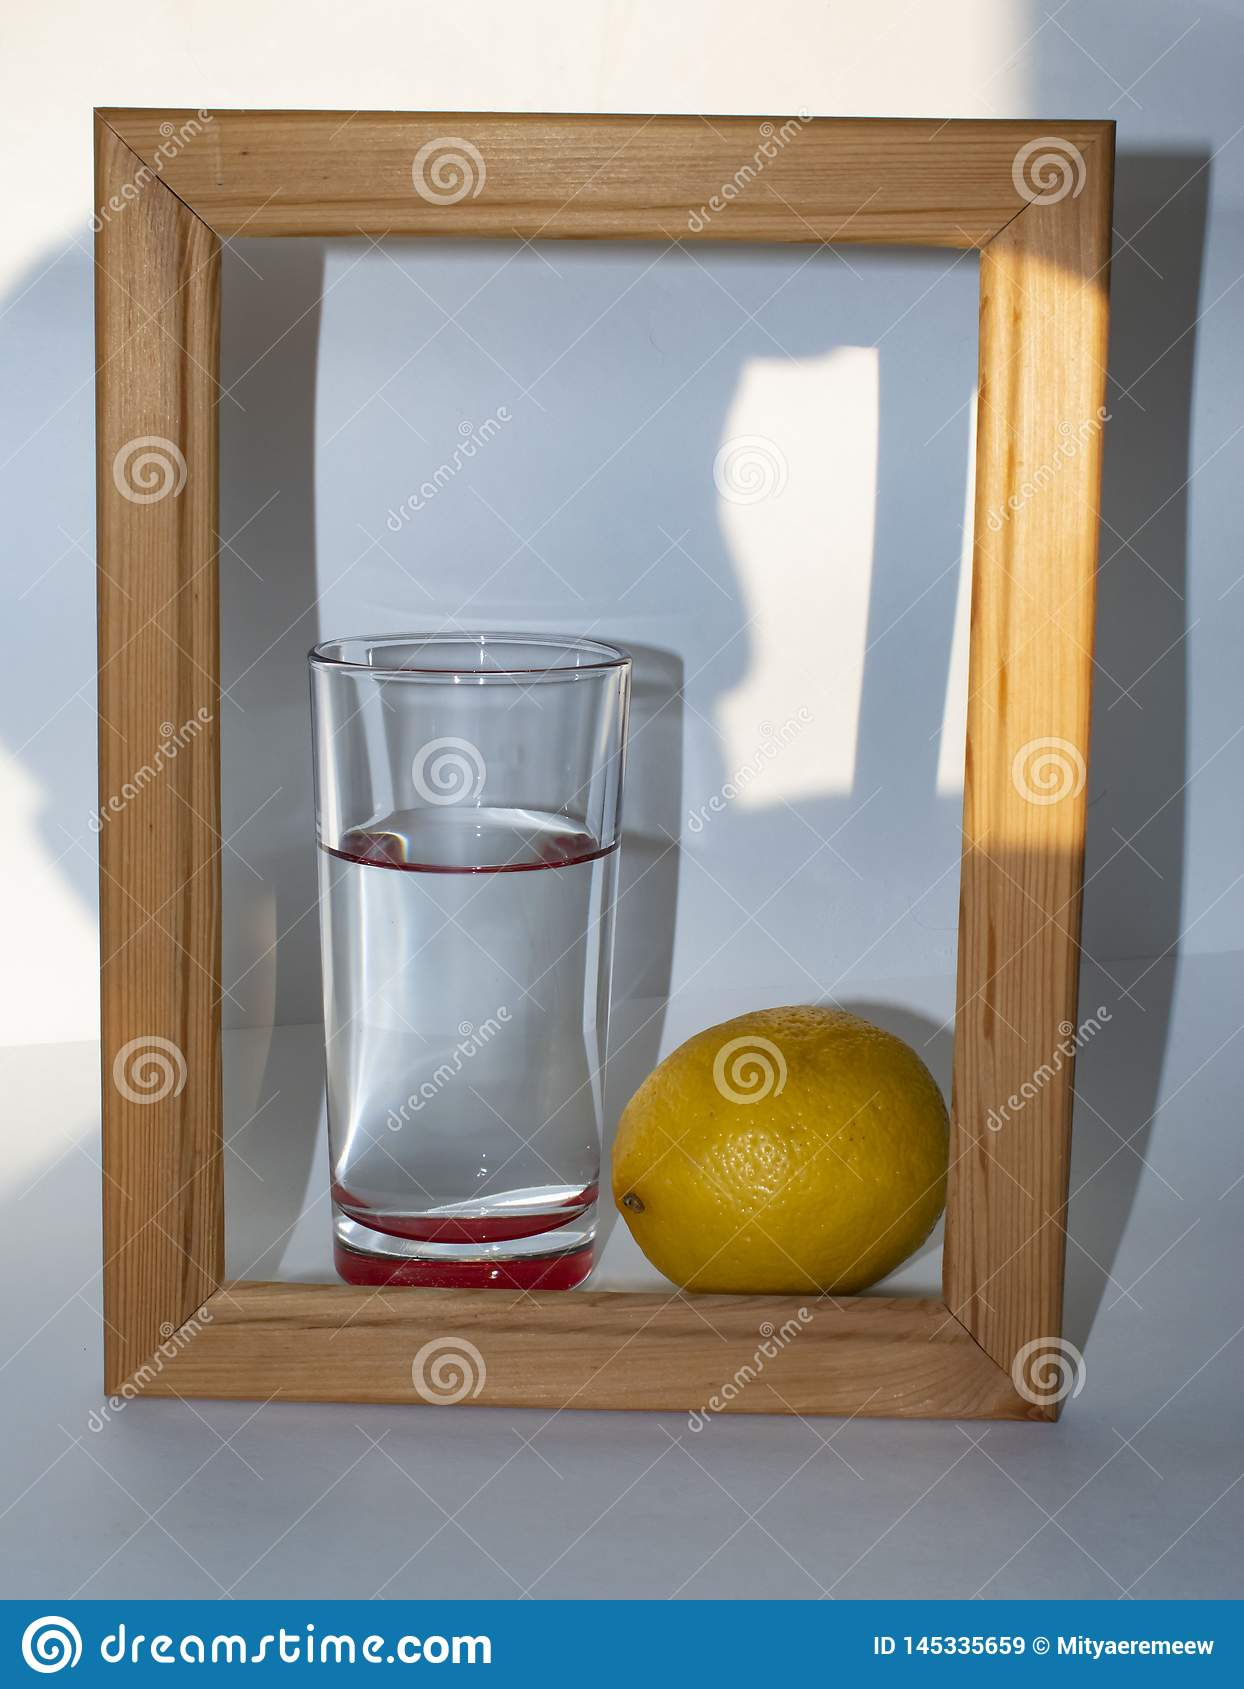 In a glass of pure clear water next to a lemon